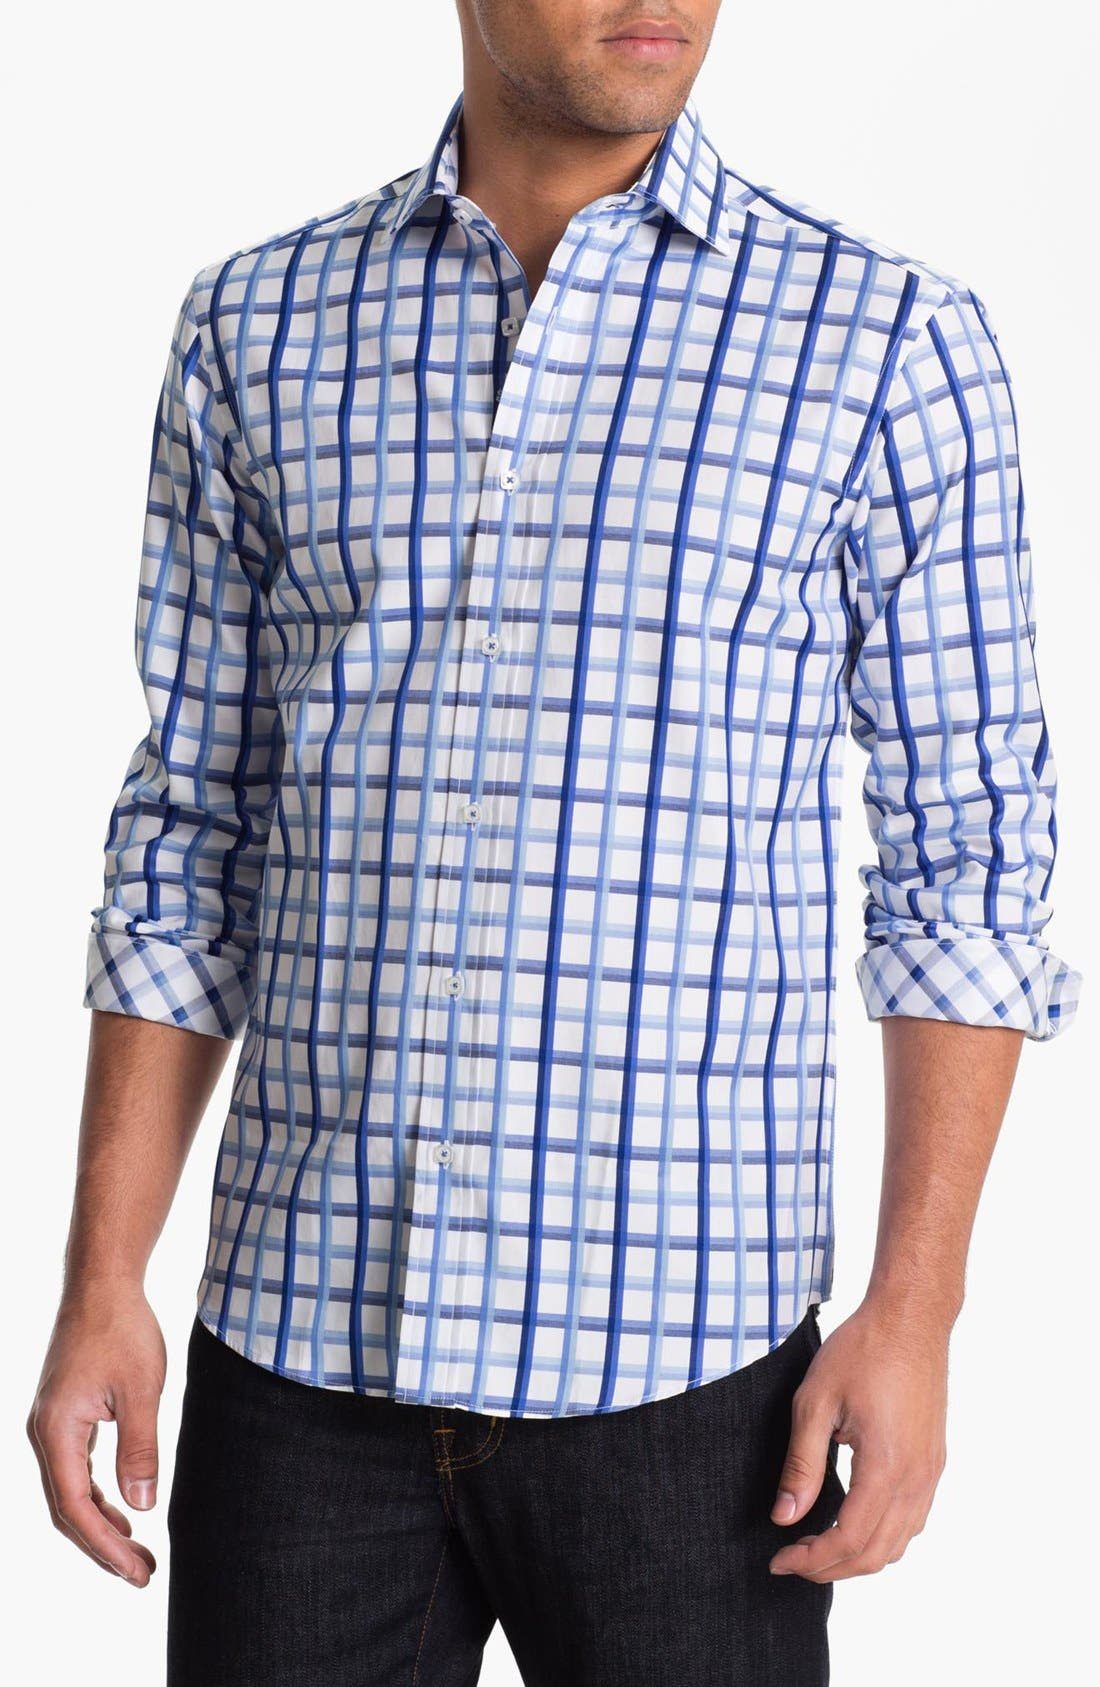 Alternate Image 1 Selected - BUGATCHI Shaped Fit Sport Shirt (Tall)